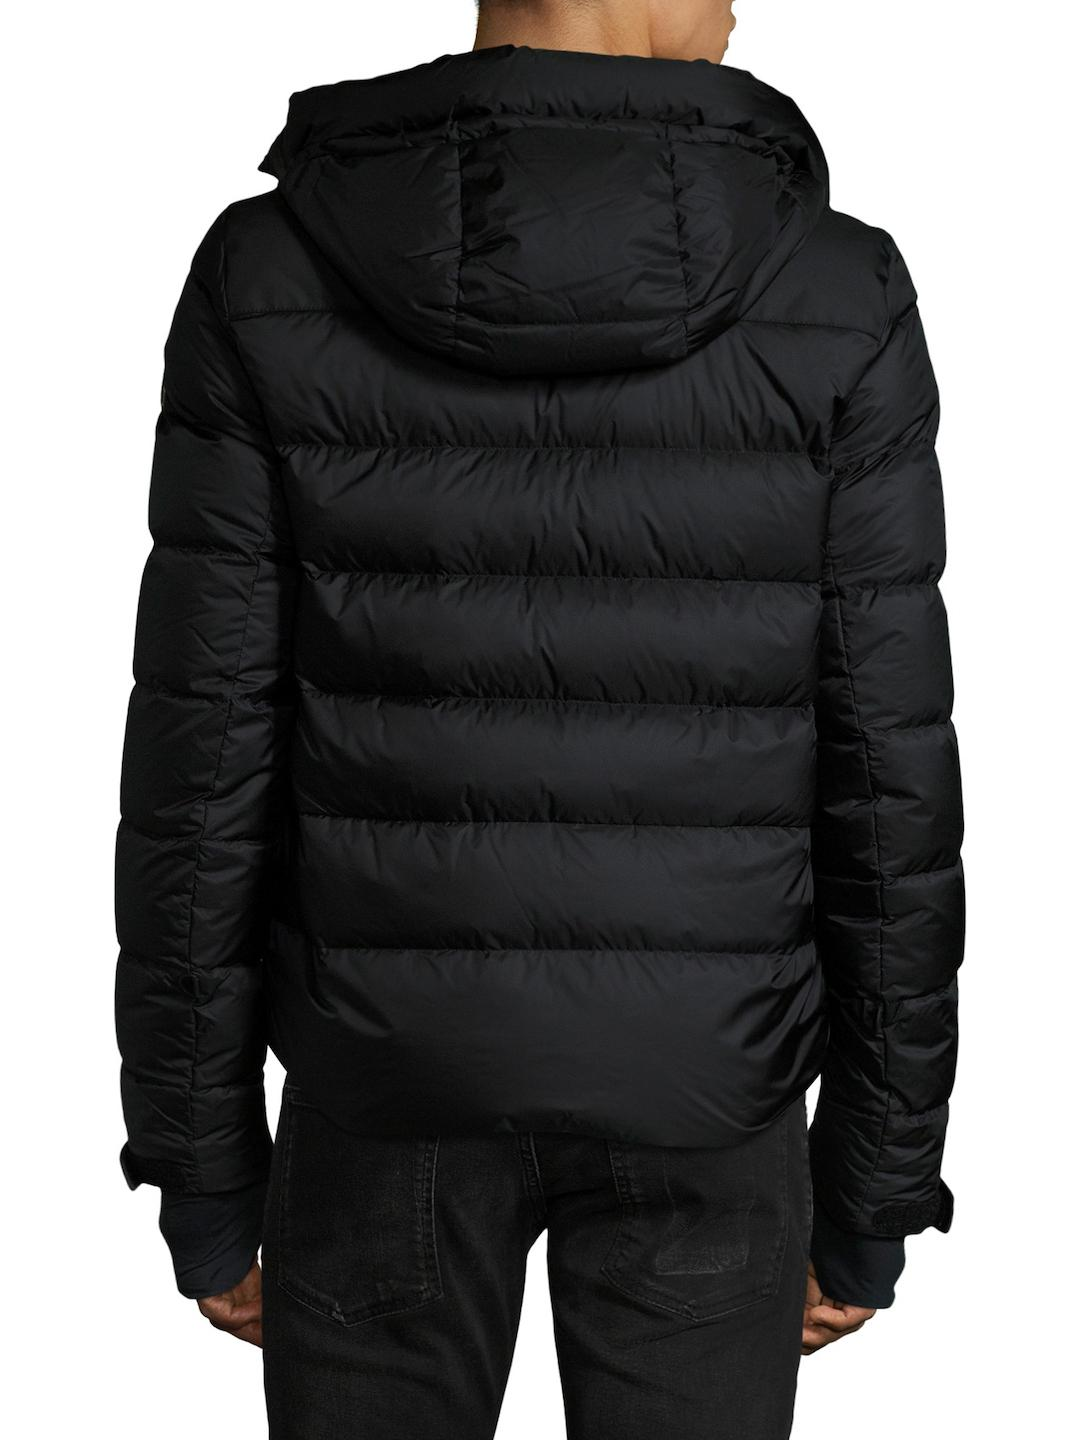 b5be840a0b25 Lyst - Moncler Grenoble Camurac Puffer Jacket in Black for Men